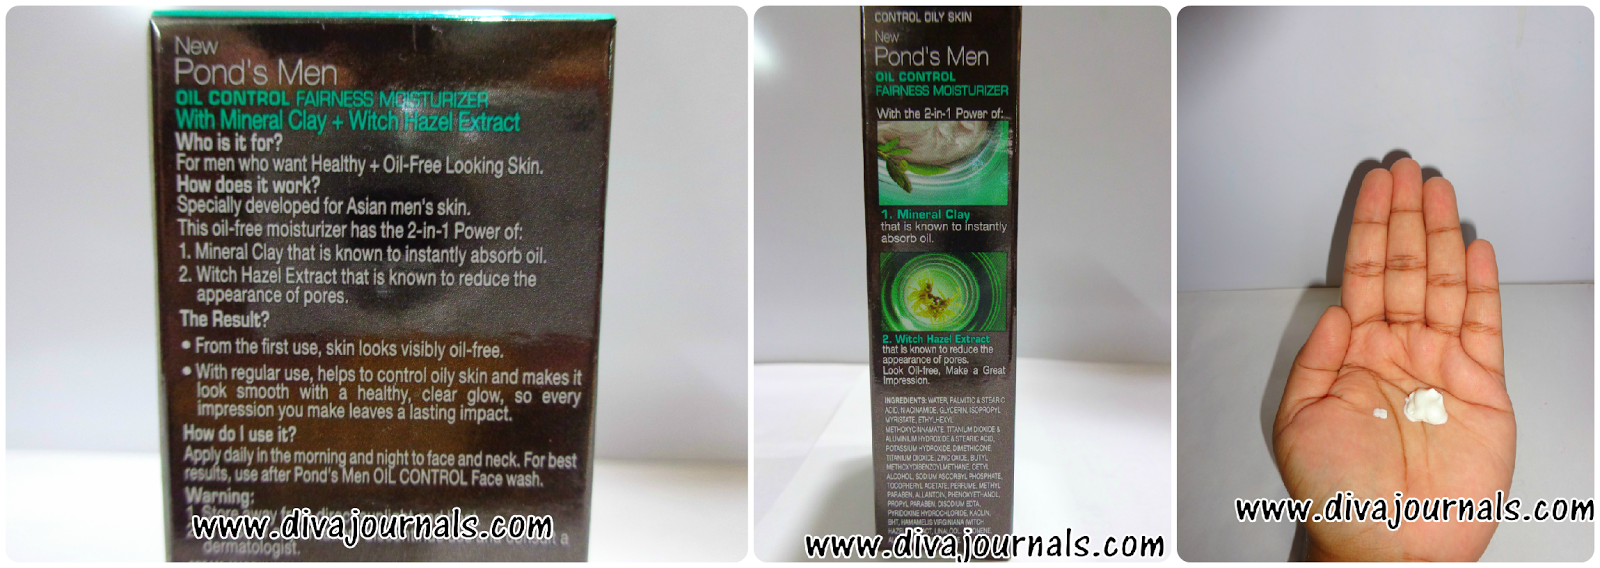 Ponds Men Oil Control Fairness Moisturiser